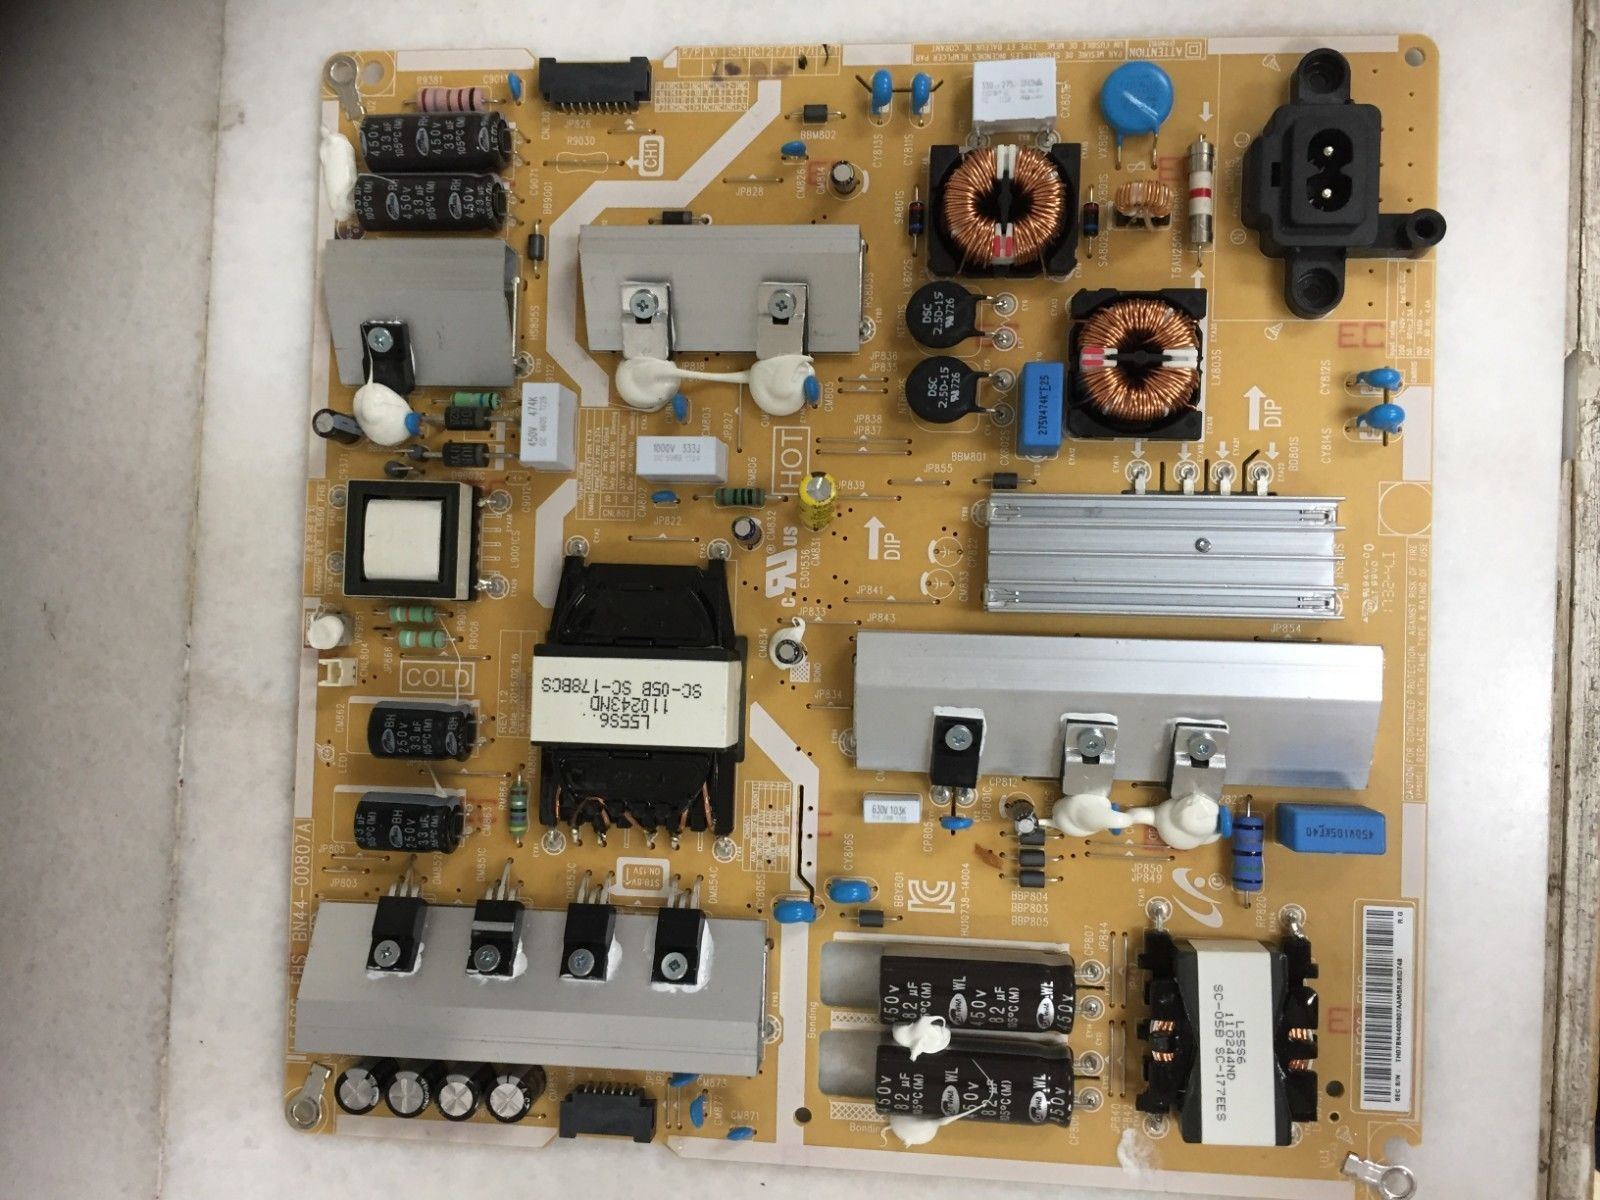 Samsung BN44-00807A Power Supply / LED Board and 47 similar items